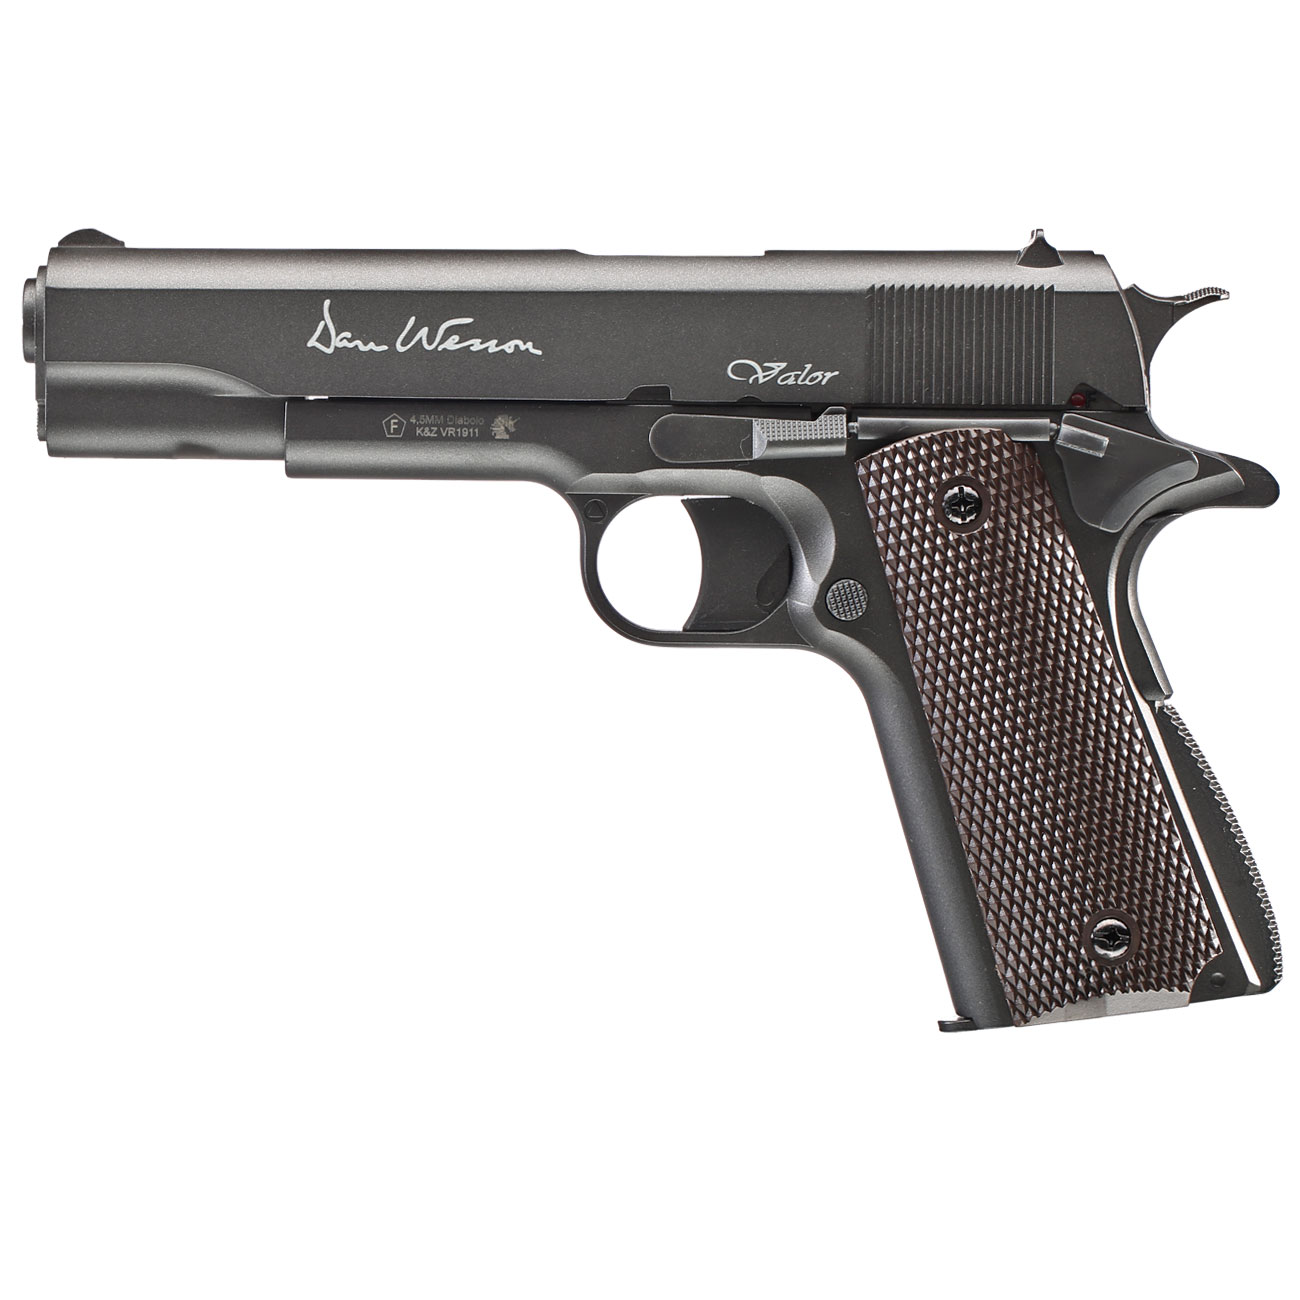 Dan Wesson Valor 1911 CO2-Luftpistole Kal. 4,5mm Diabolo Non-Blowback 0